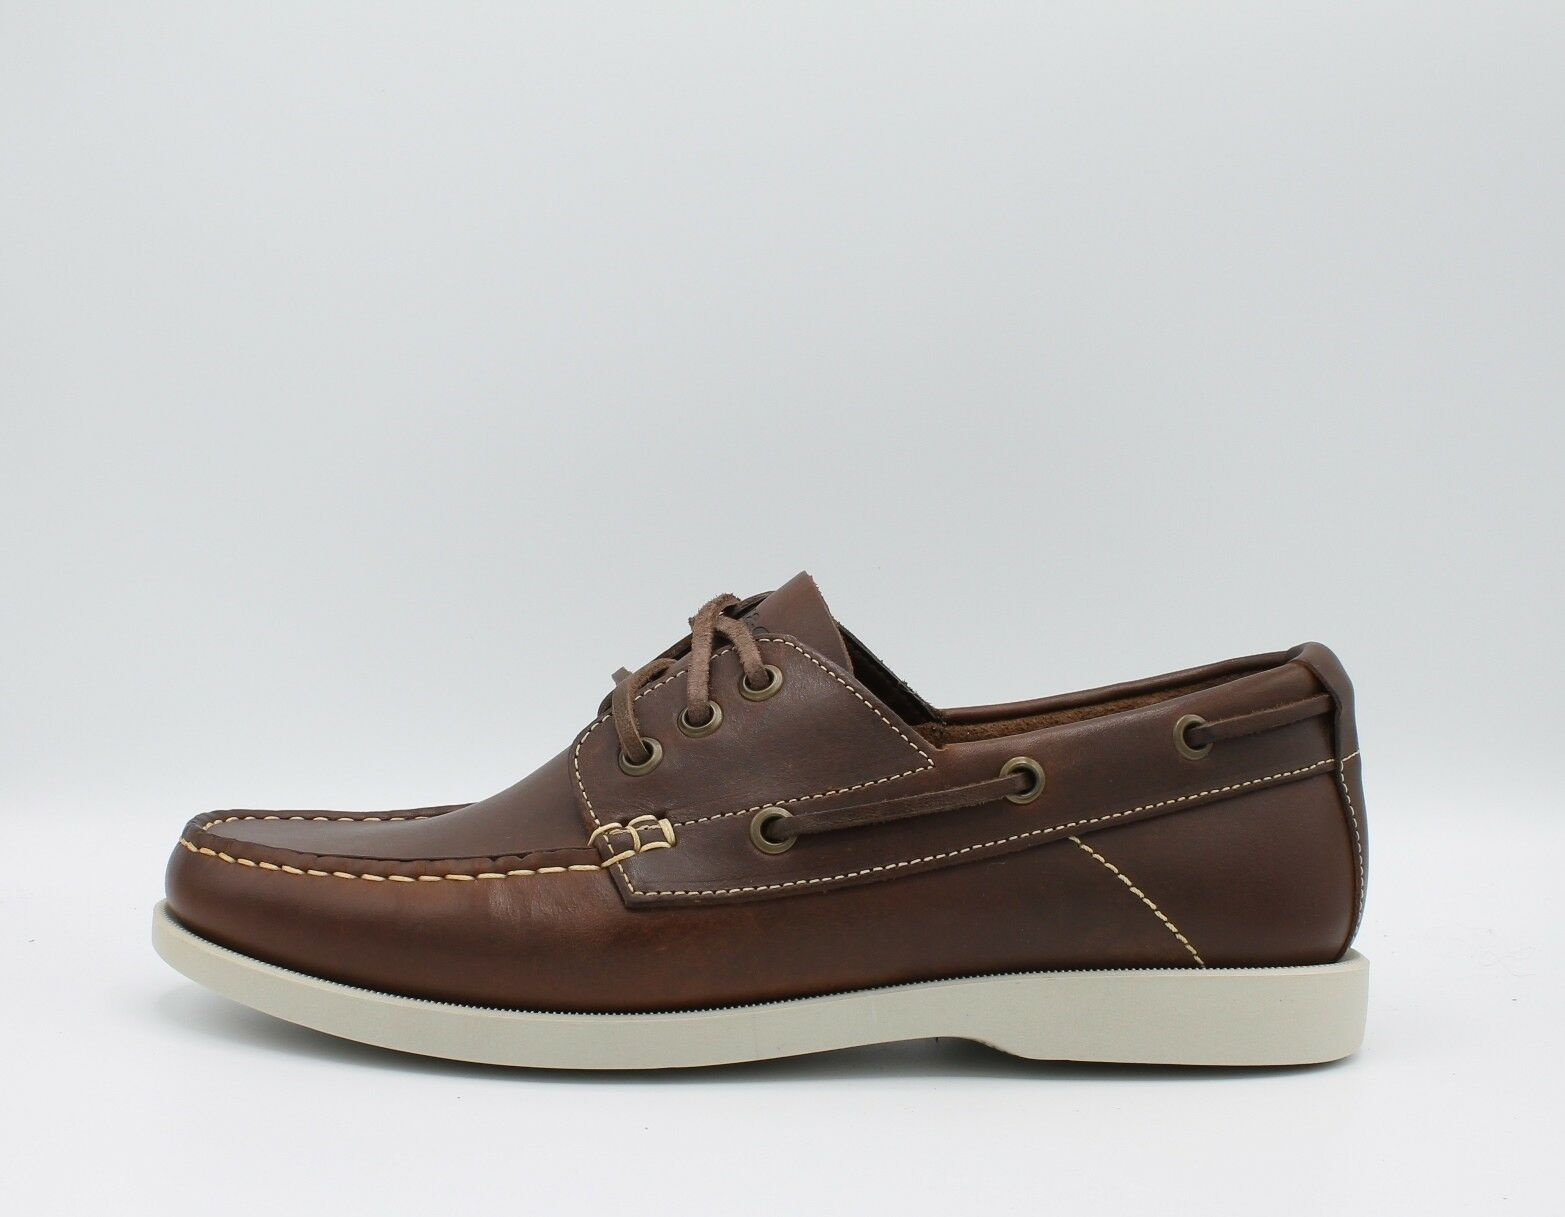 IGI & CO. UIO 1112722 men's shoes model by boat with laces leather leather